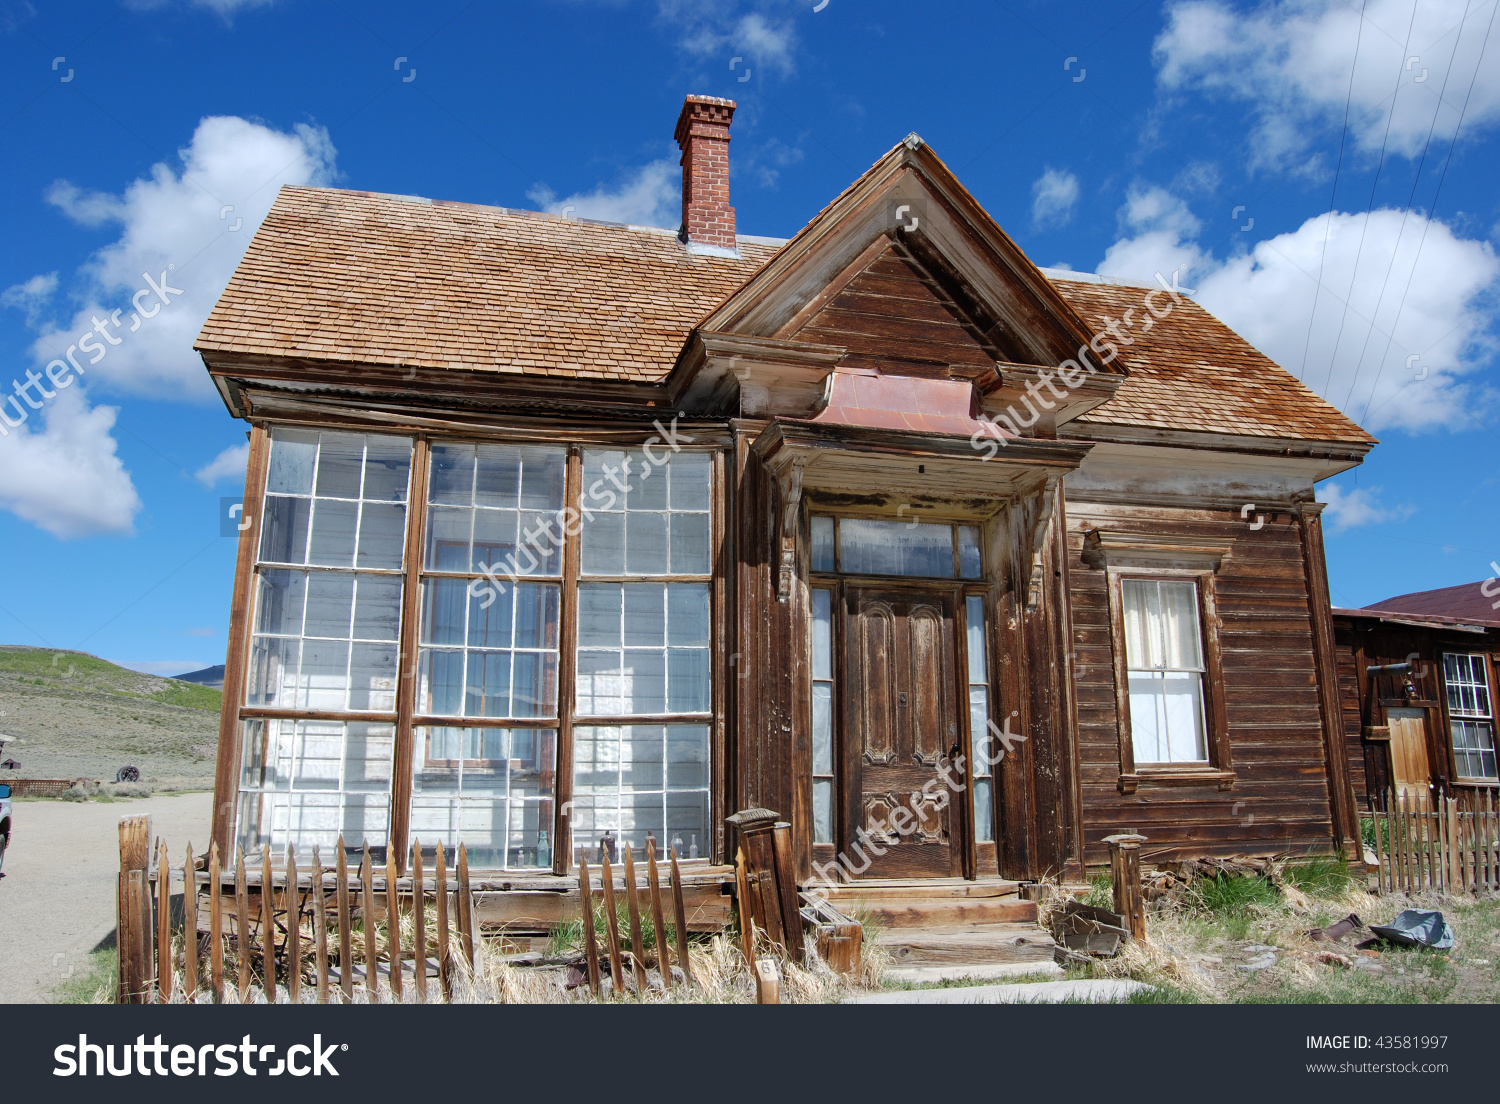 Bodie California Ghost Town Store Stock Photo 43581997.